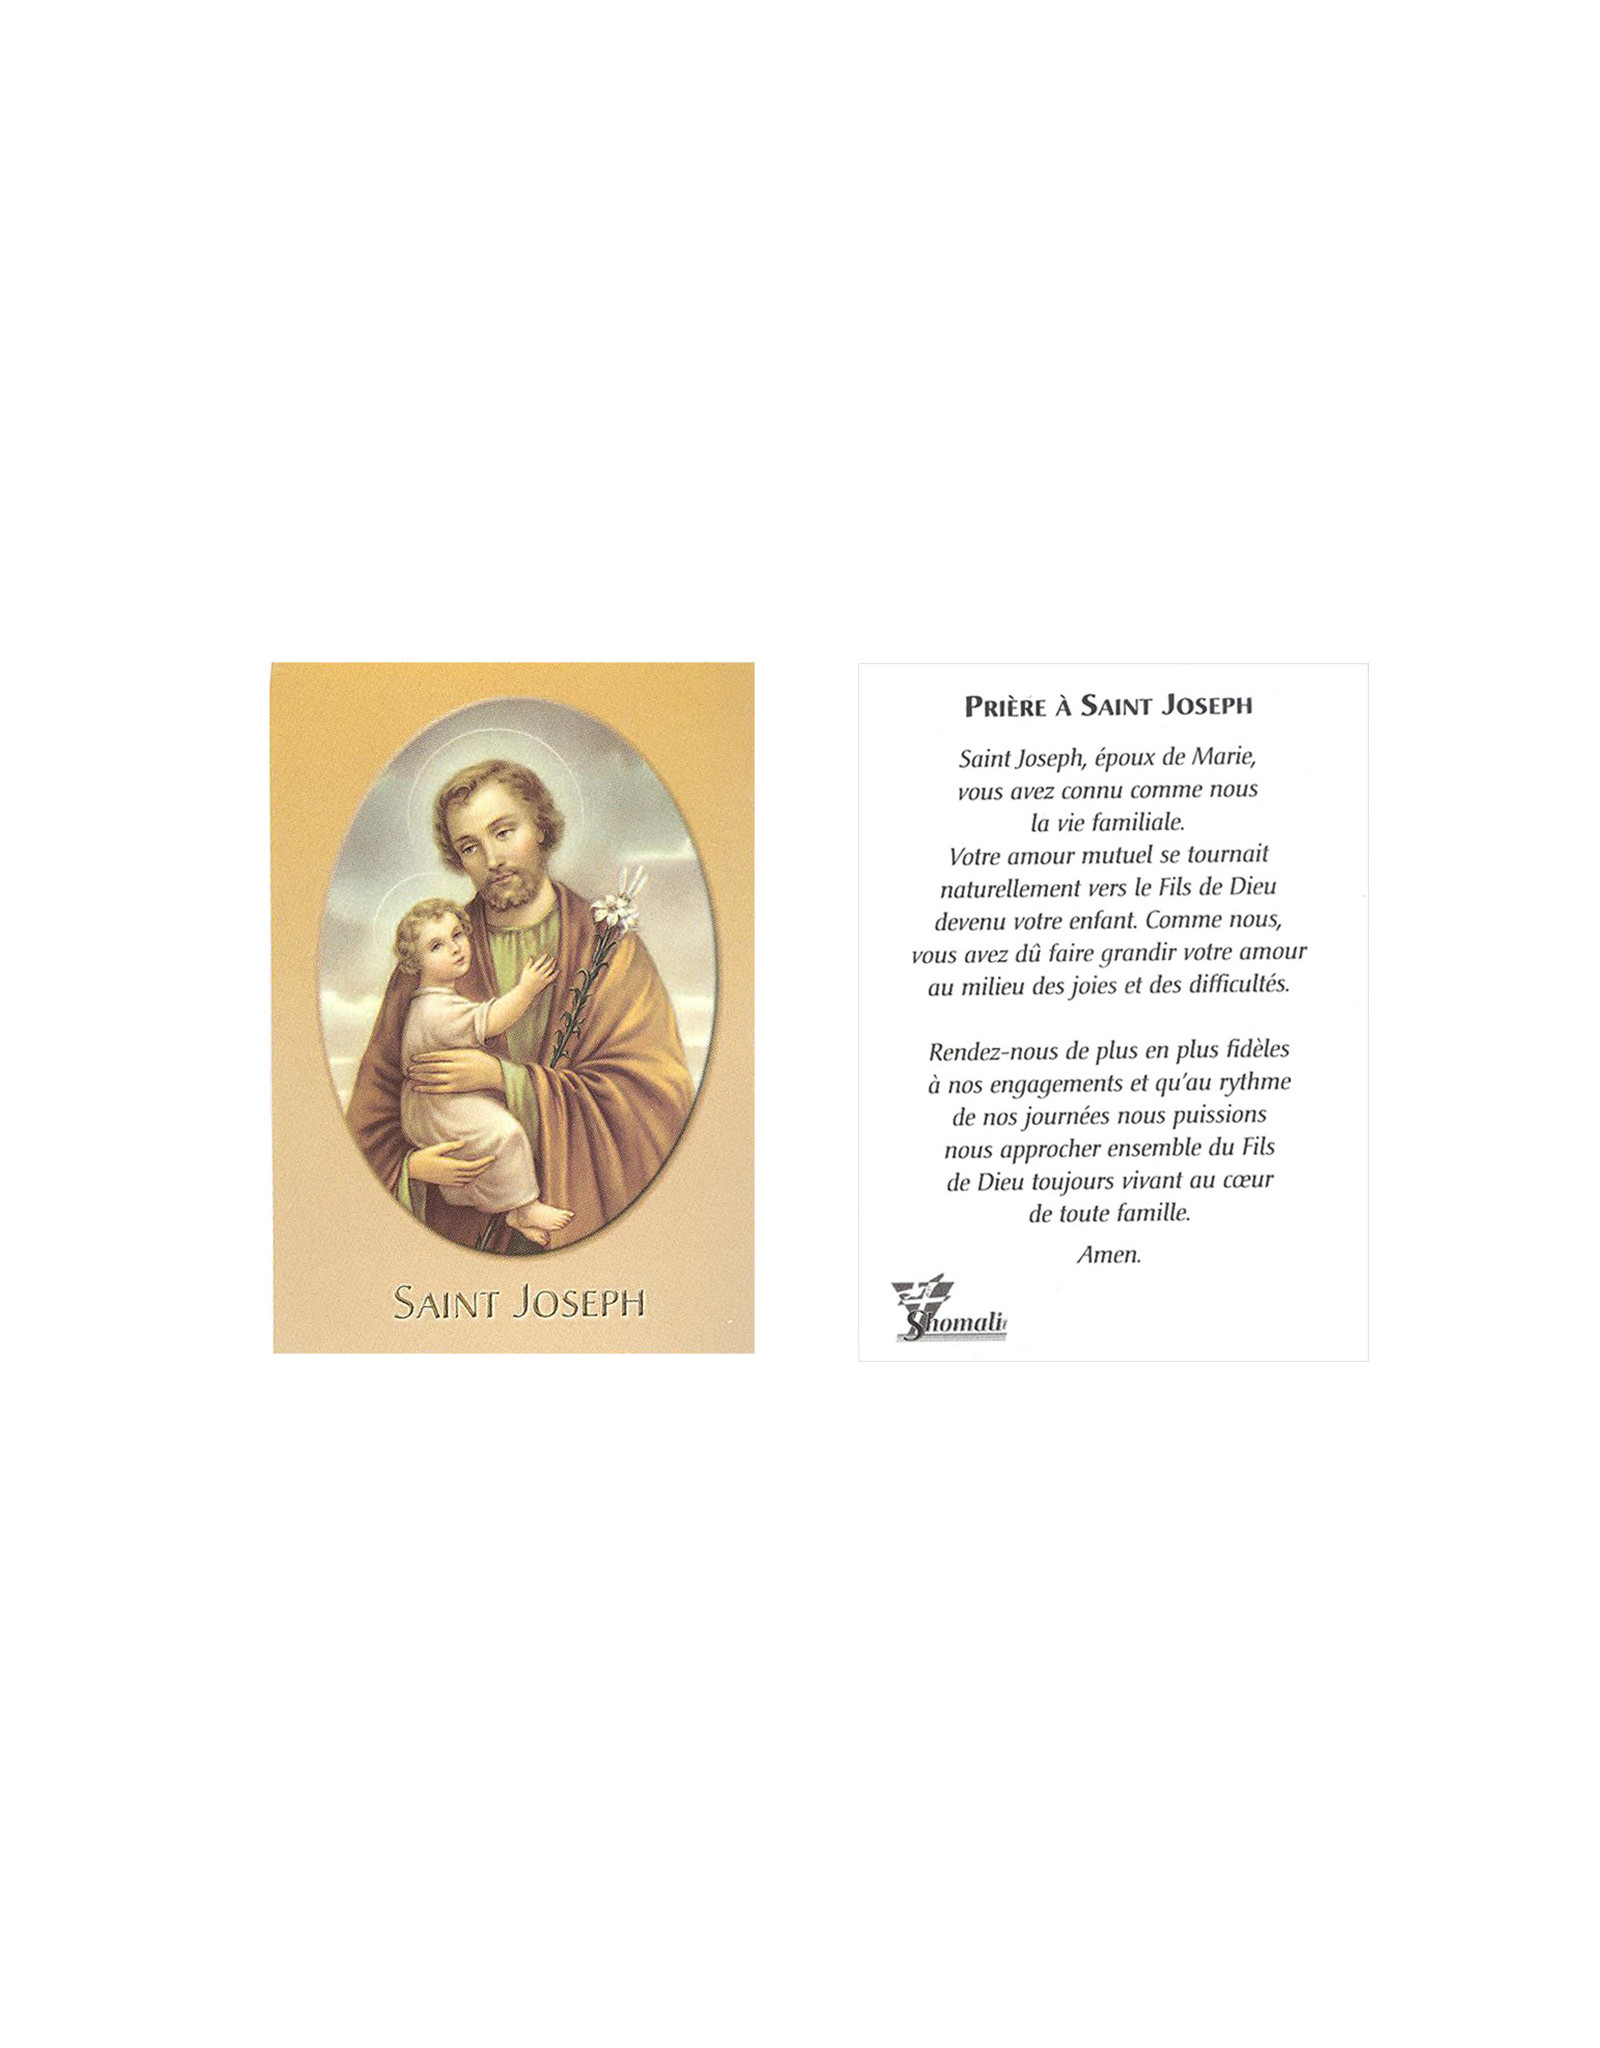 Saint Joseph medal pendant and chain - with prayer card